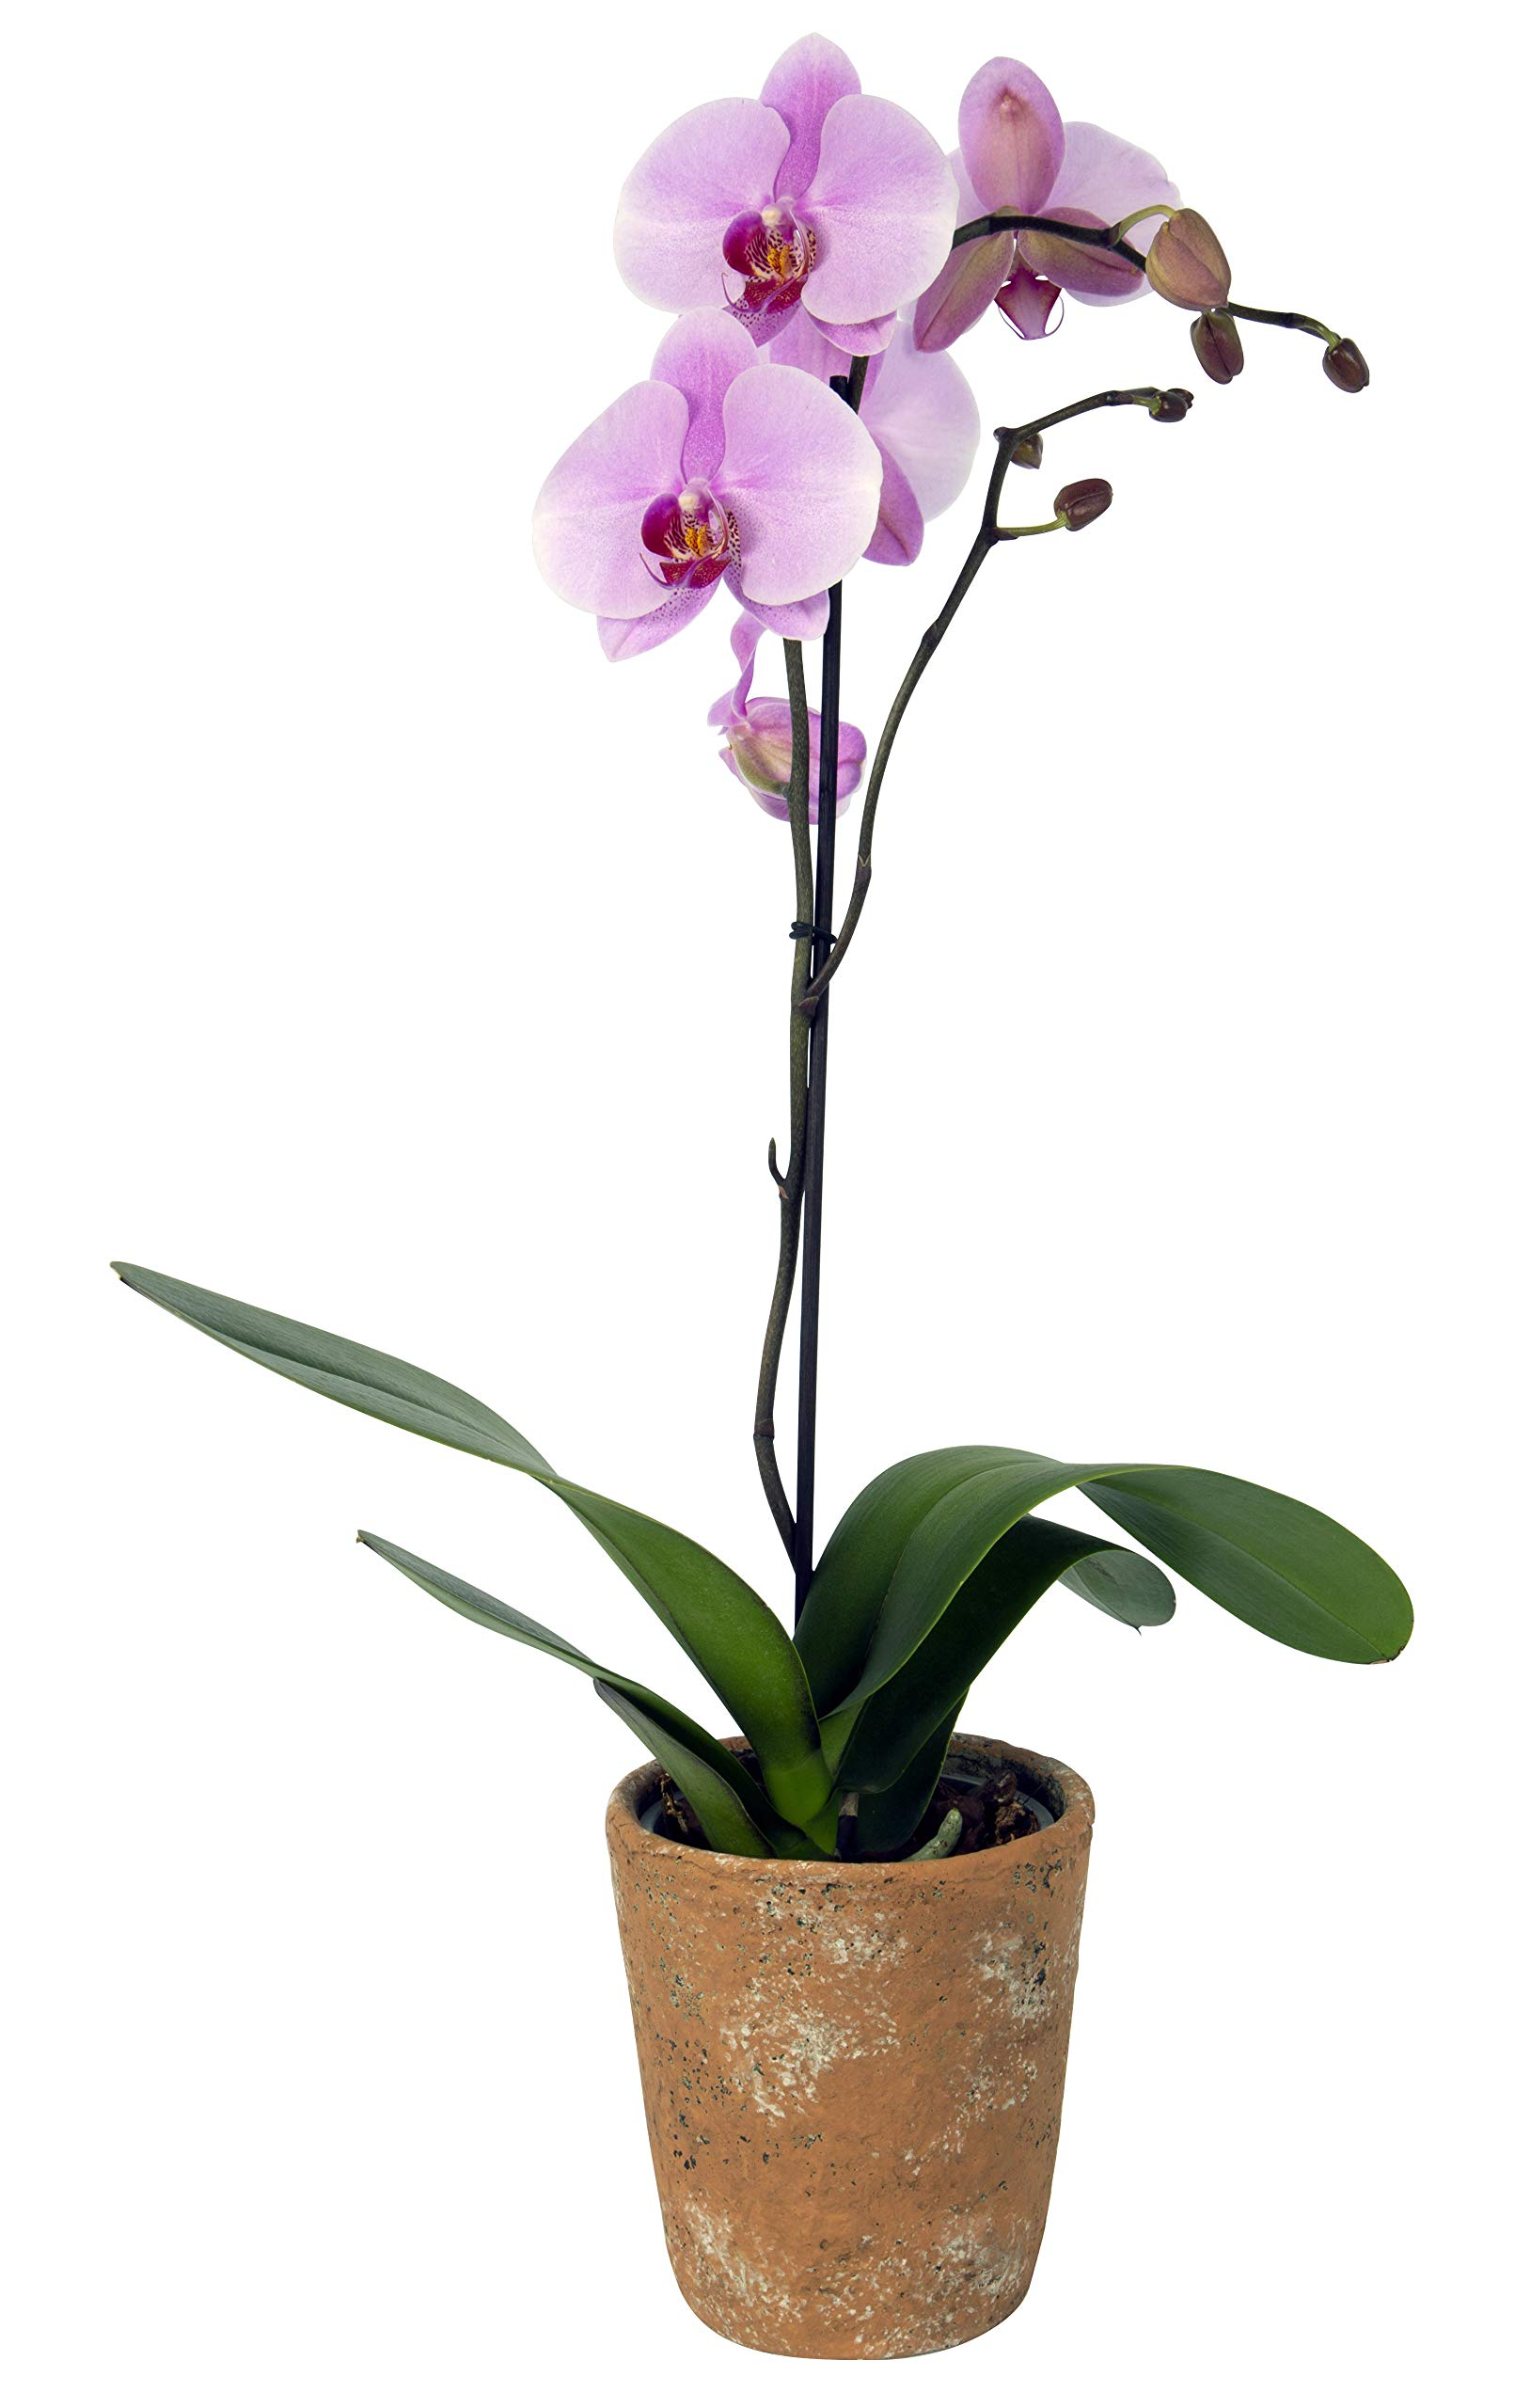 Color Orchids Live Blooming Single Stem Phalaenopsis Orchid Plant in Ceramic Pot, 20-24'' Tall, Pink Blooms